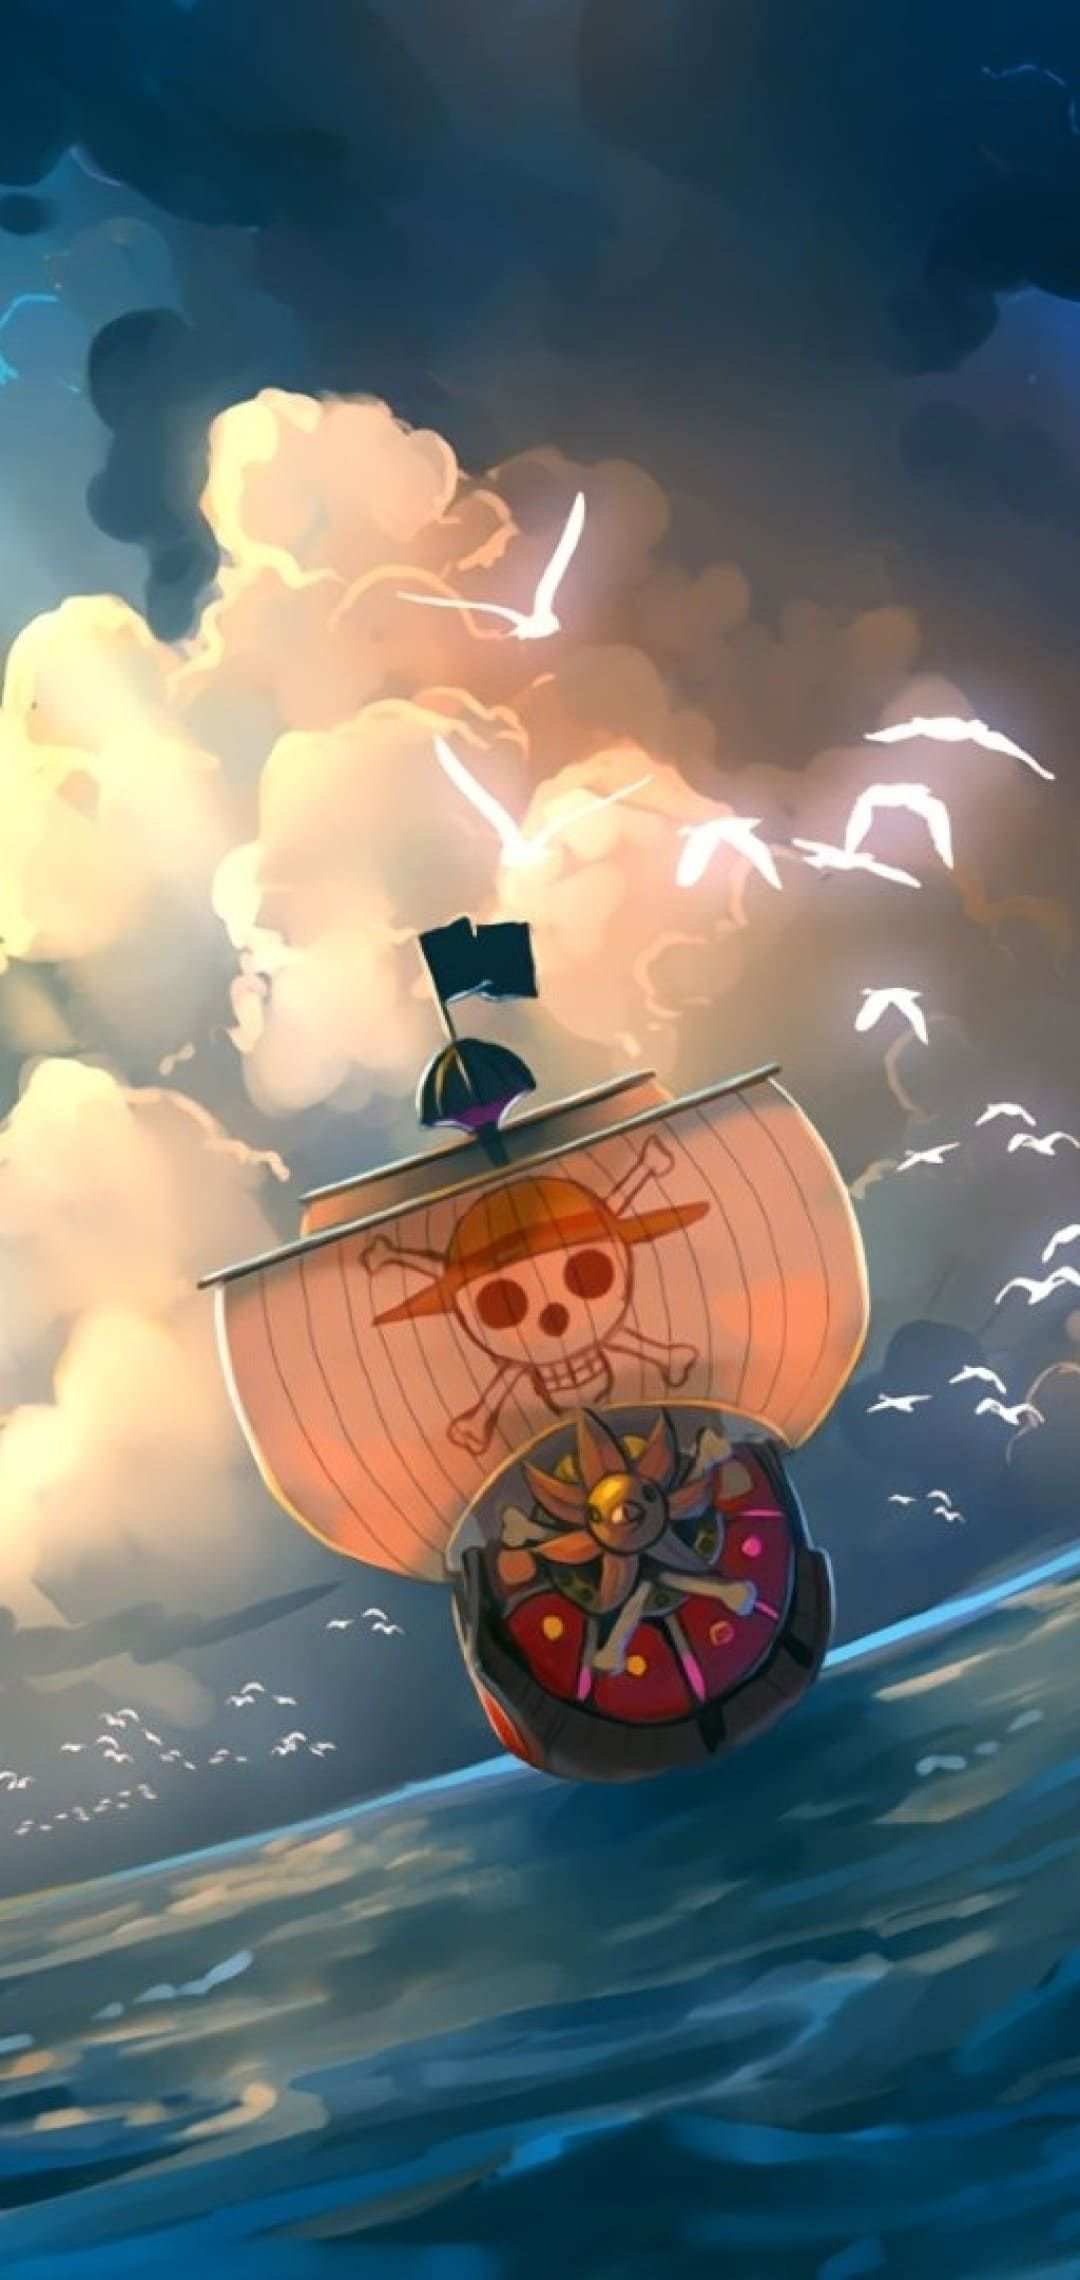 One Piece Wallpaper Iphone Xs Max Anime Wallpaper In 2020 One Piece Wallpaper Iphone Anime Wallpaper Anime Wallpaper Phone